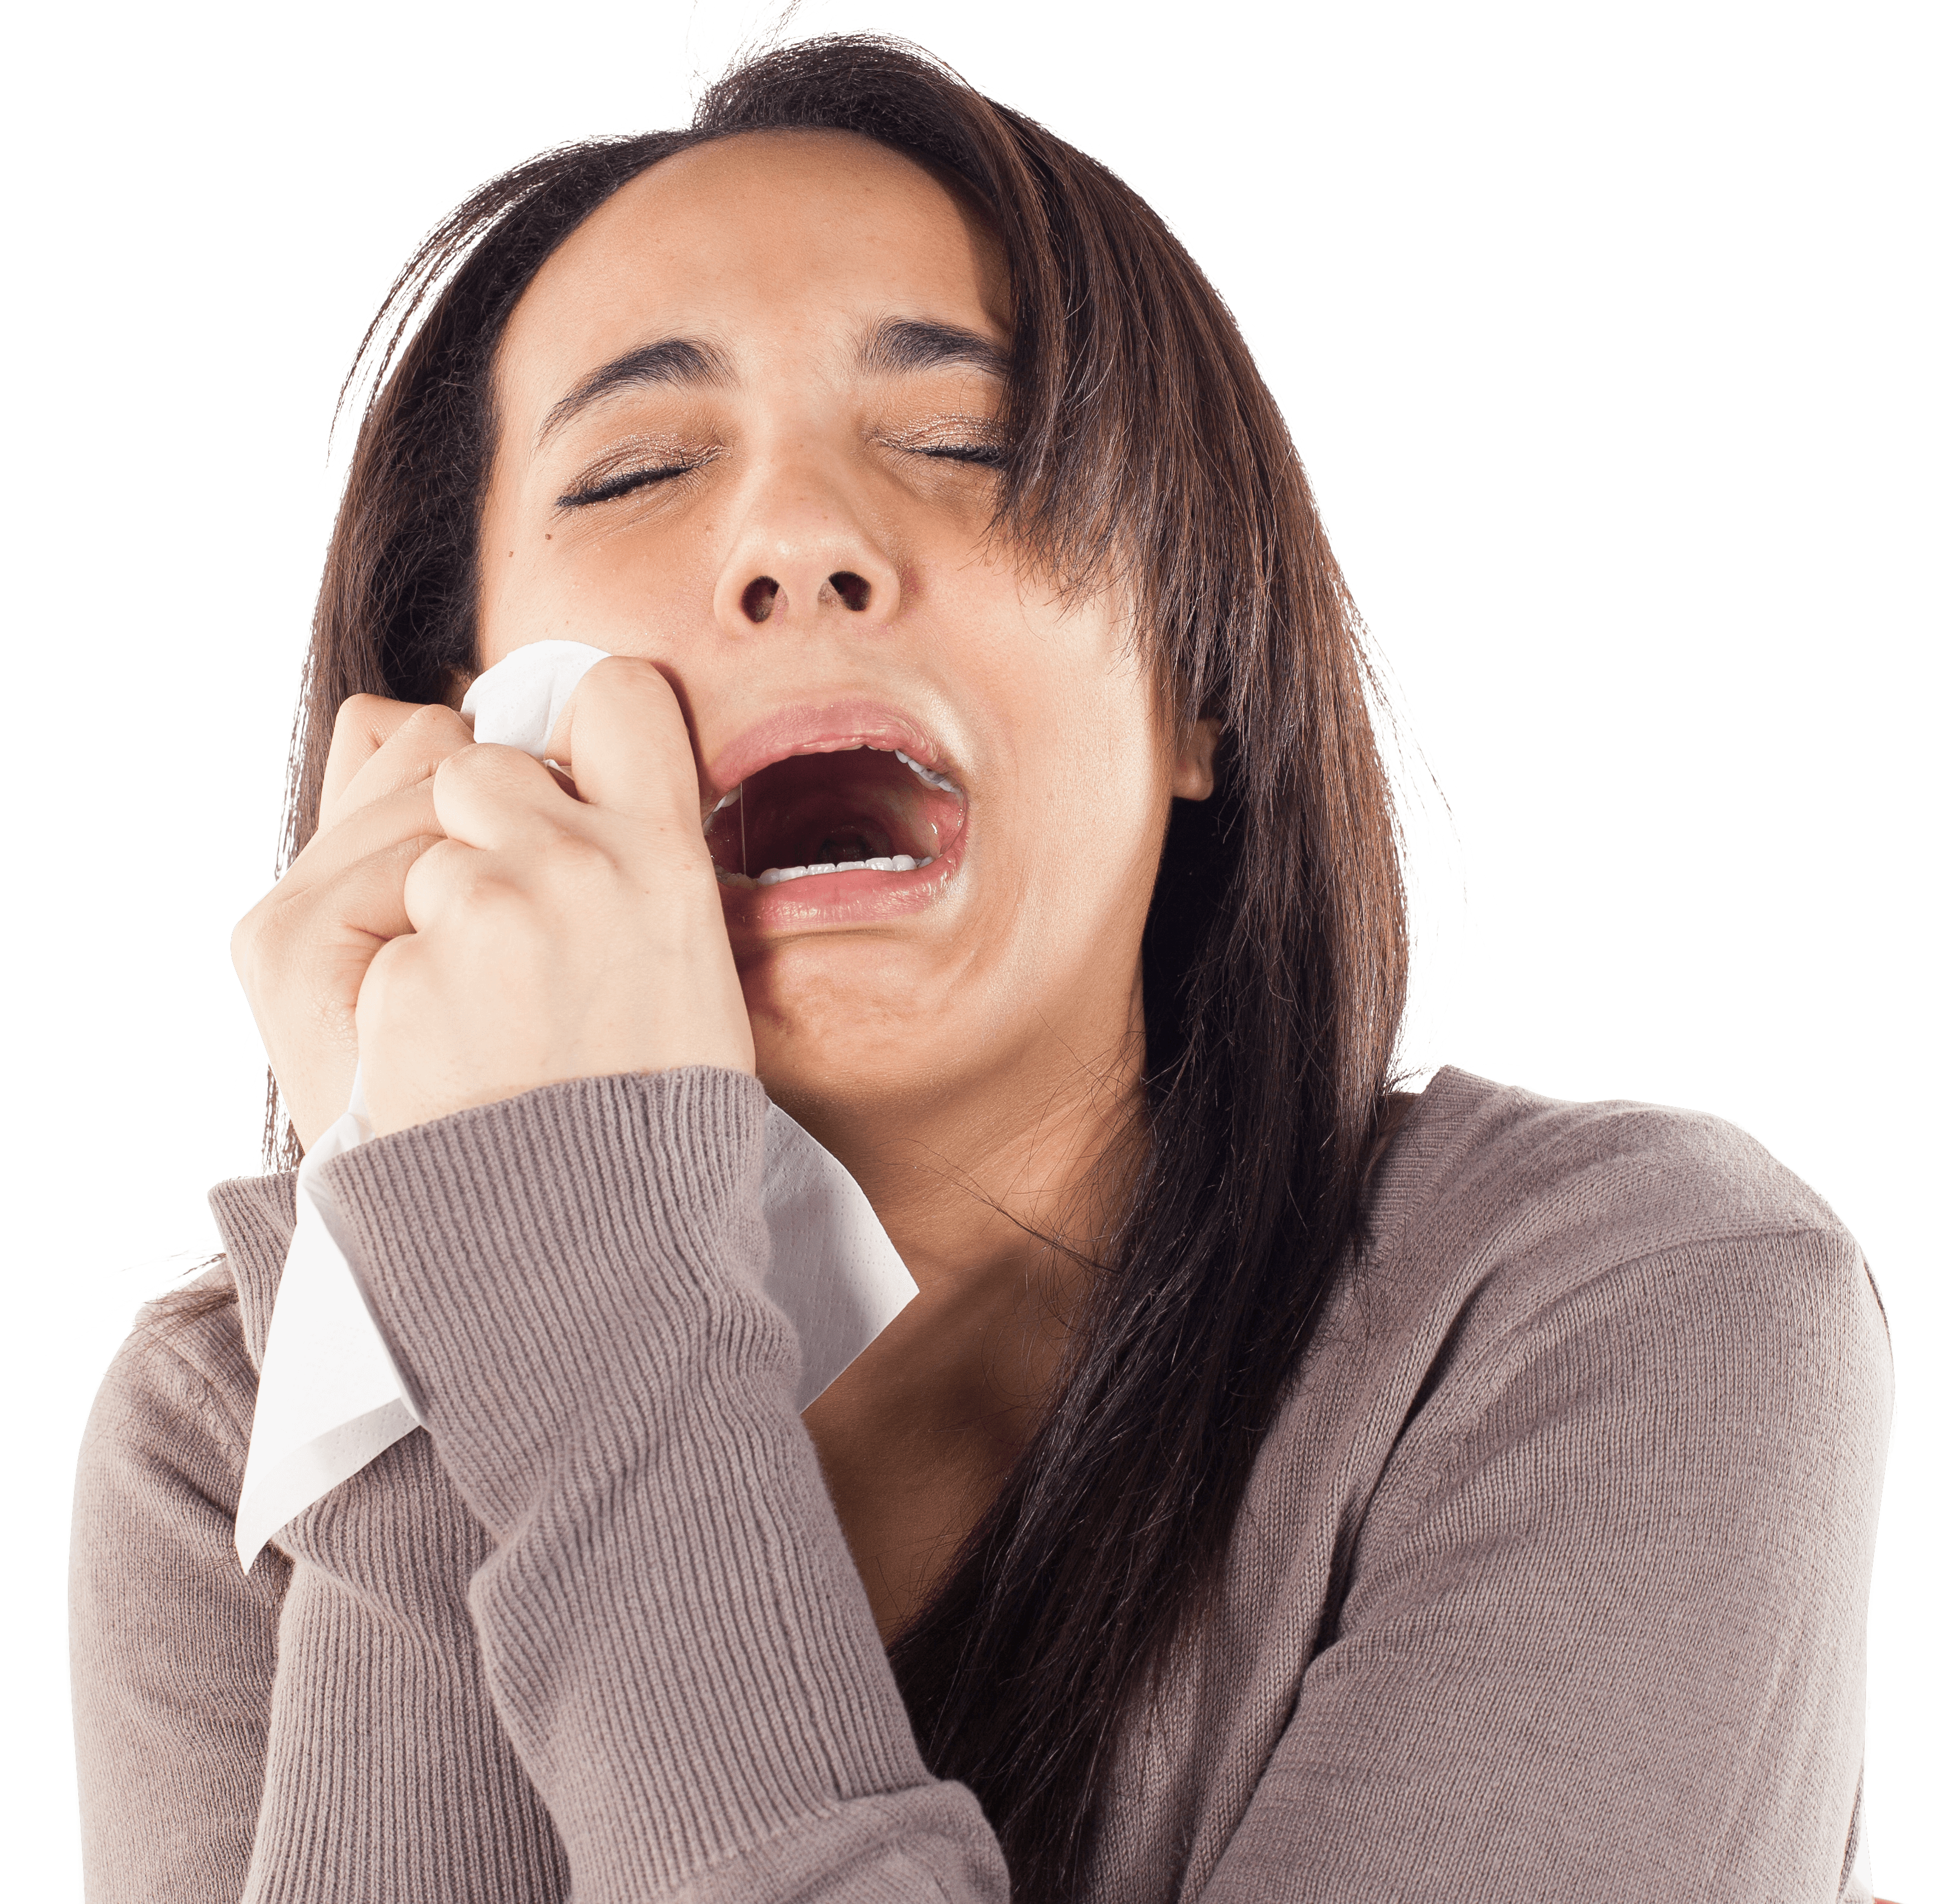 Woman cutouts personwoman . Crying man png graphic free library